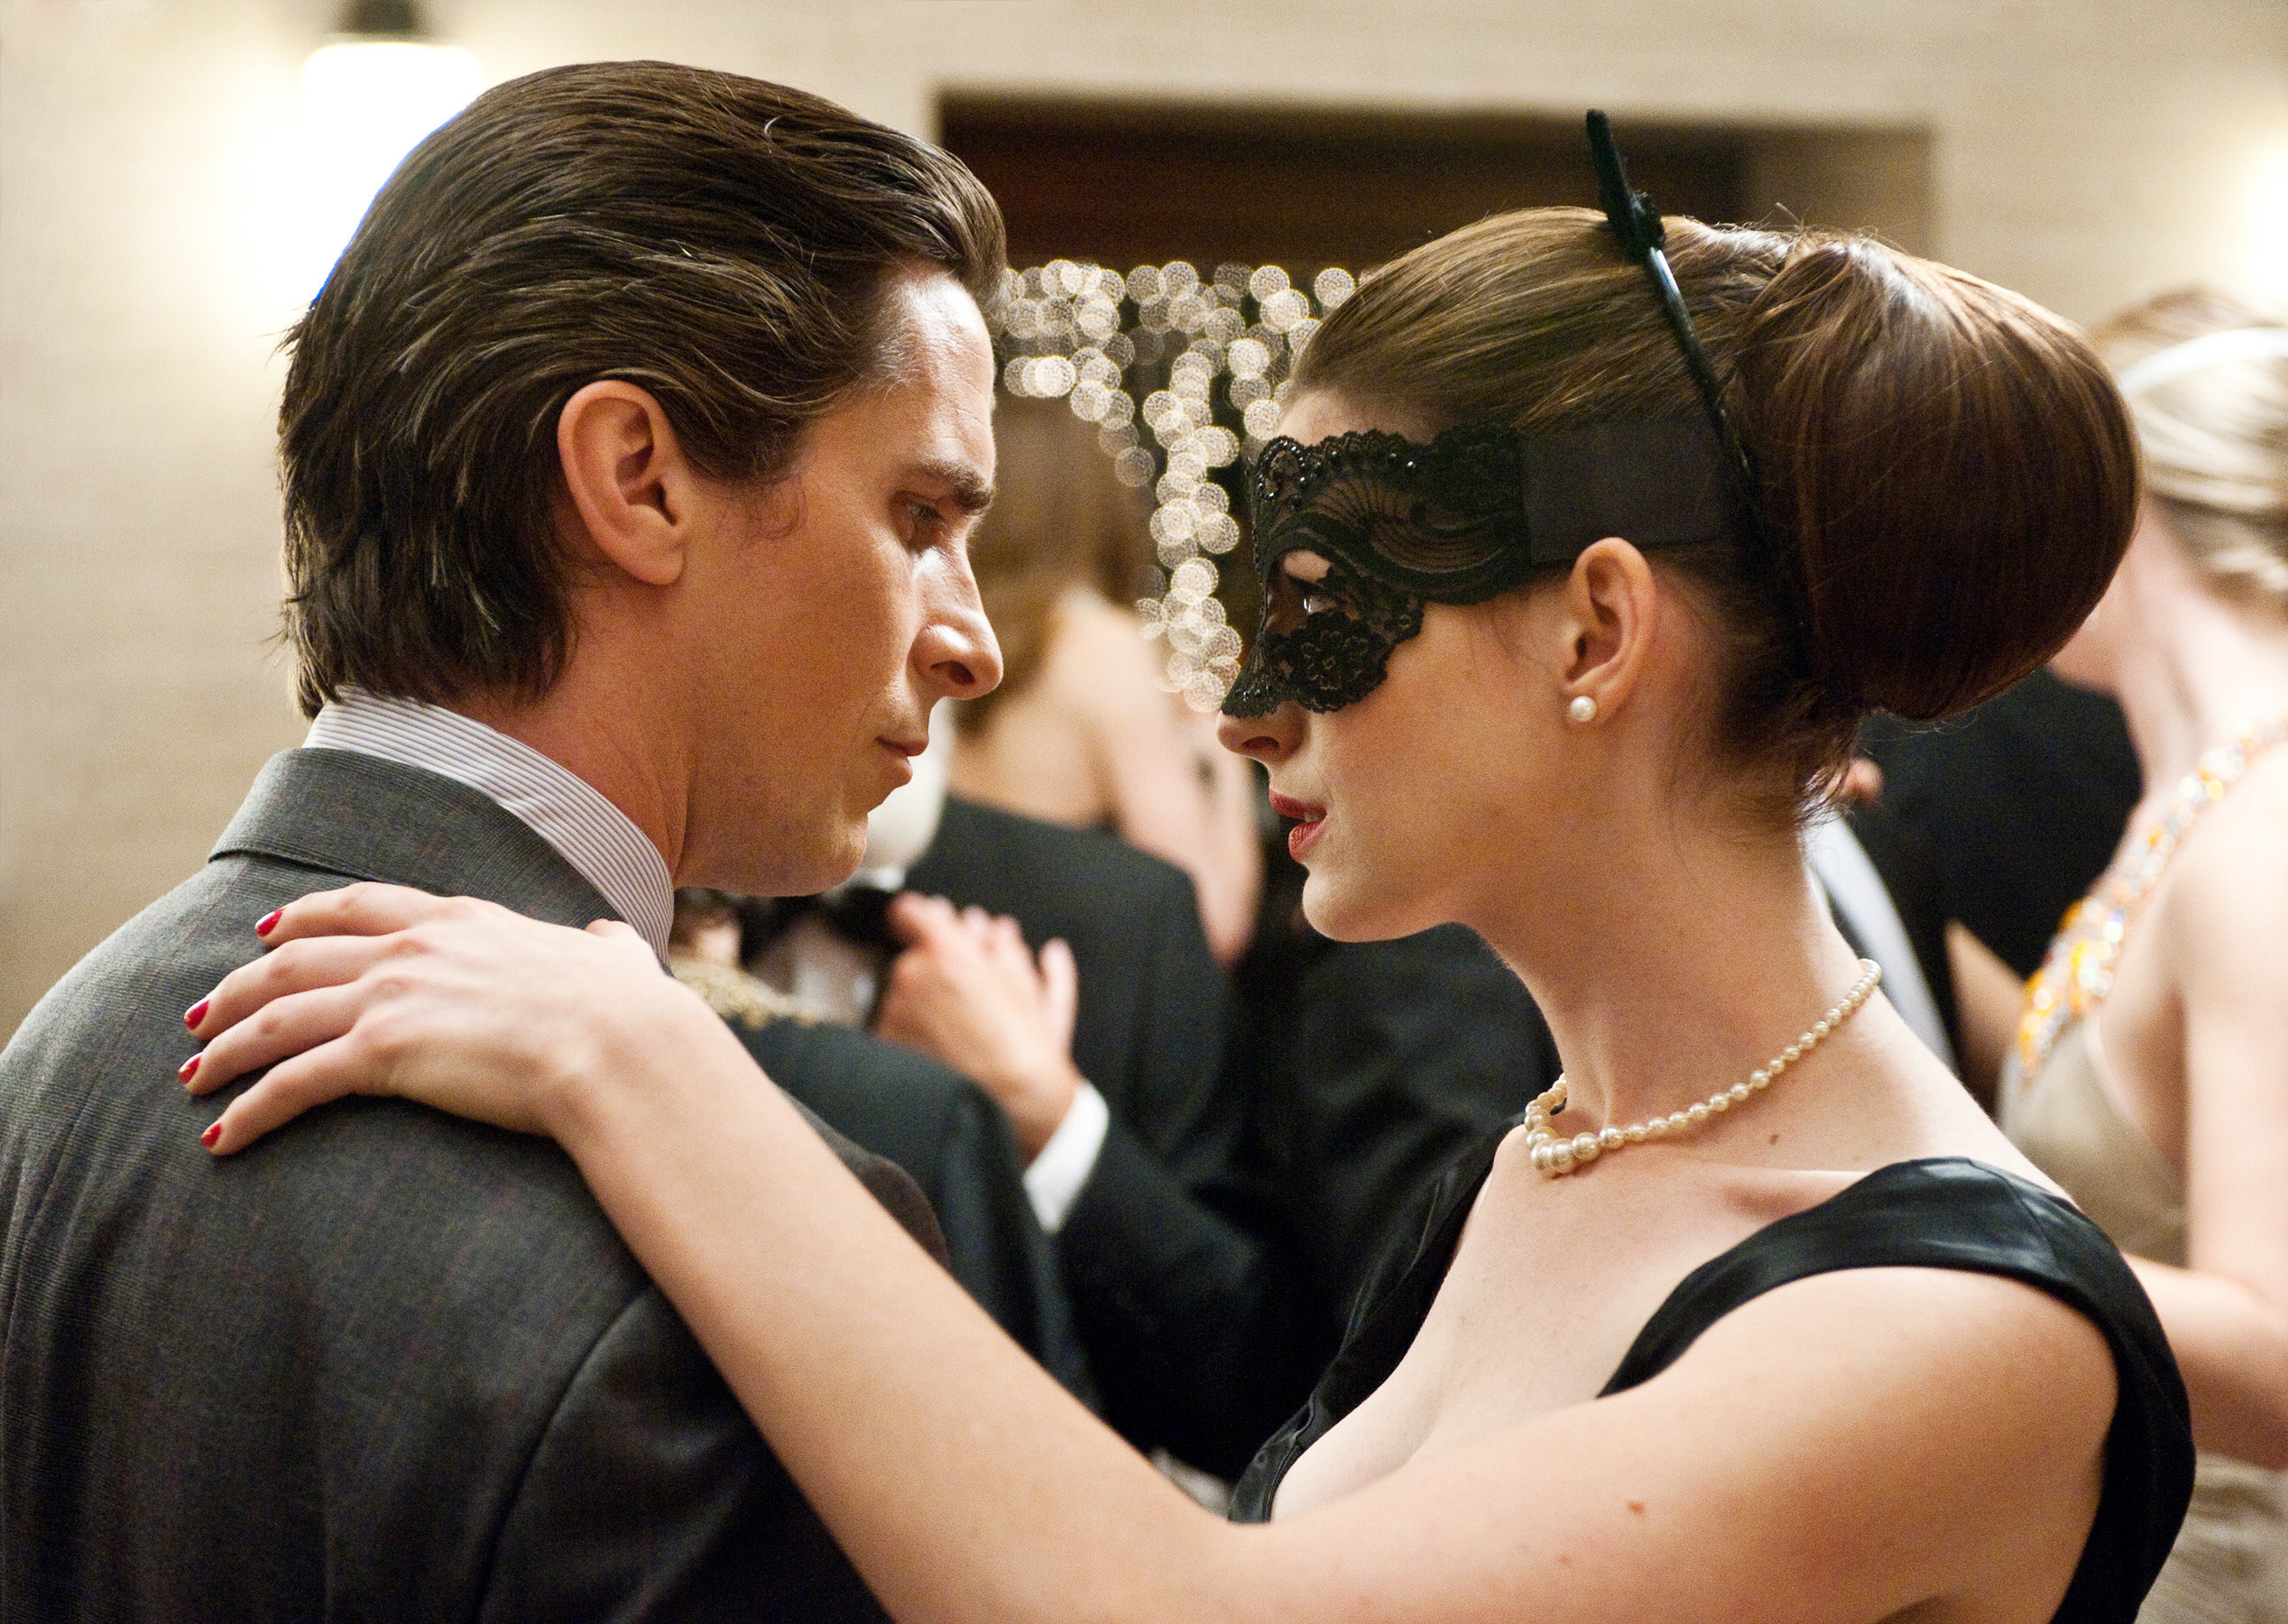 Bruce and Catwoman dancing